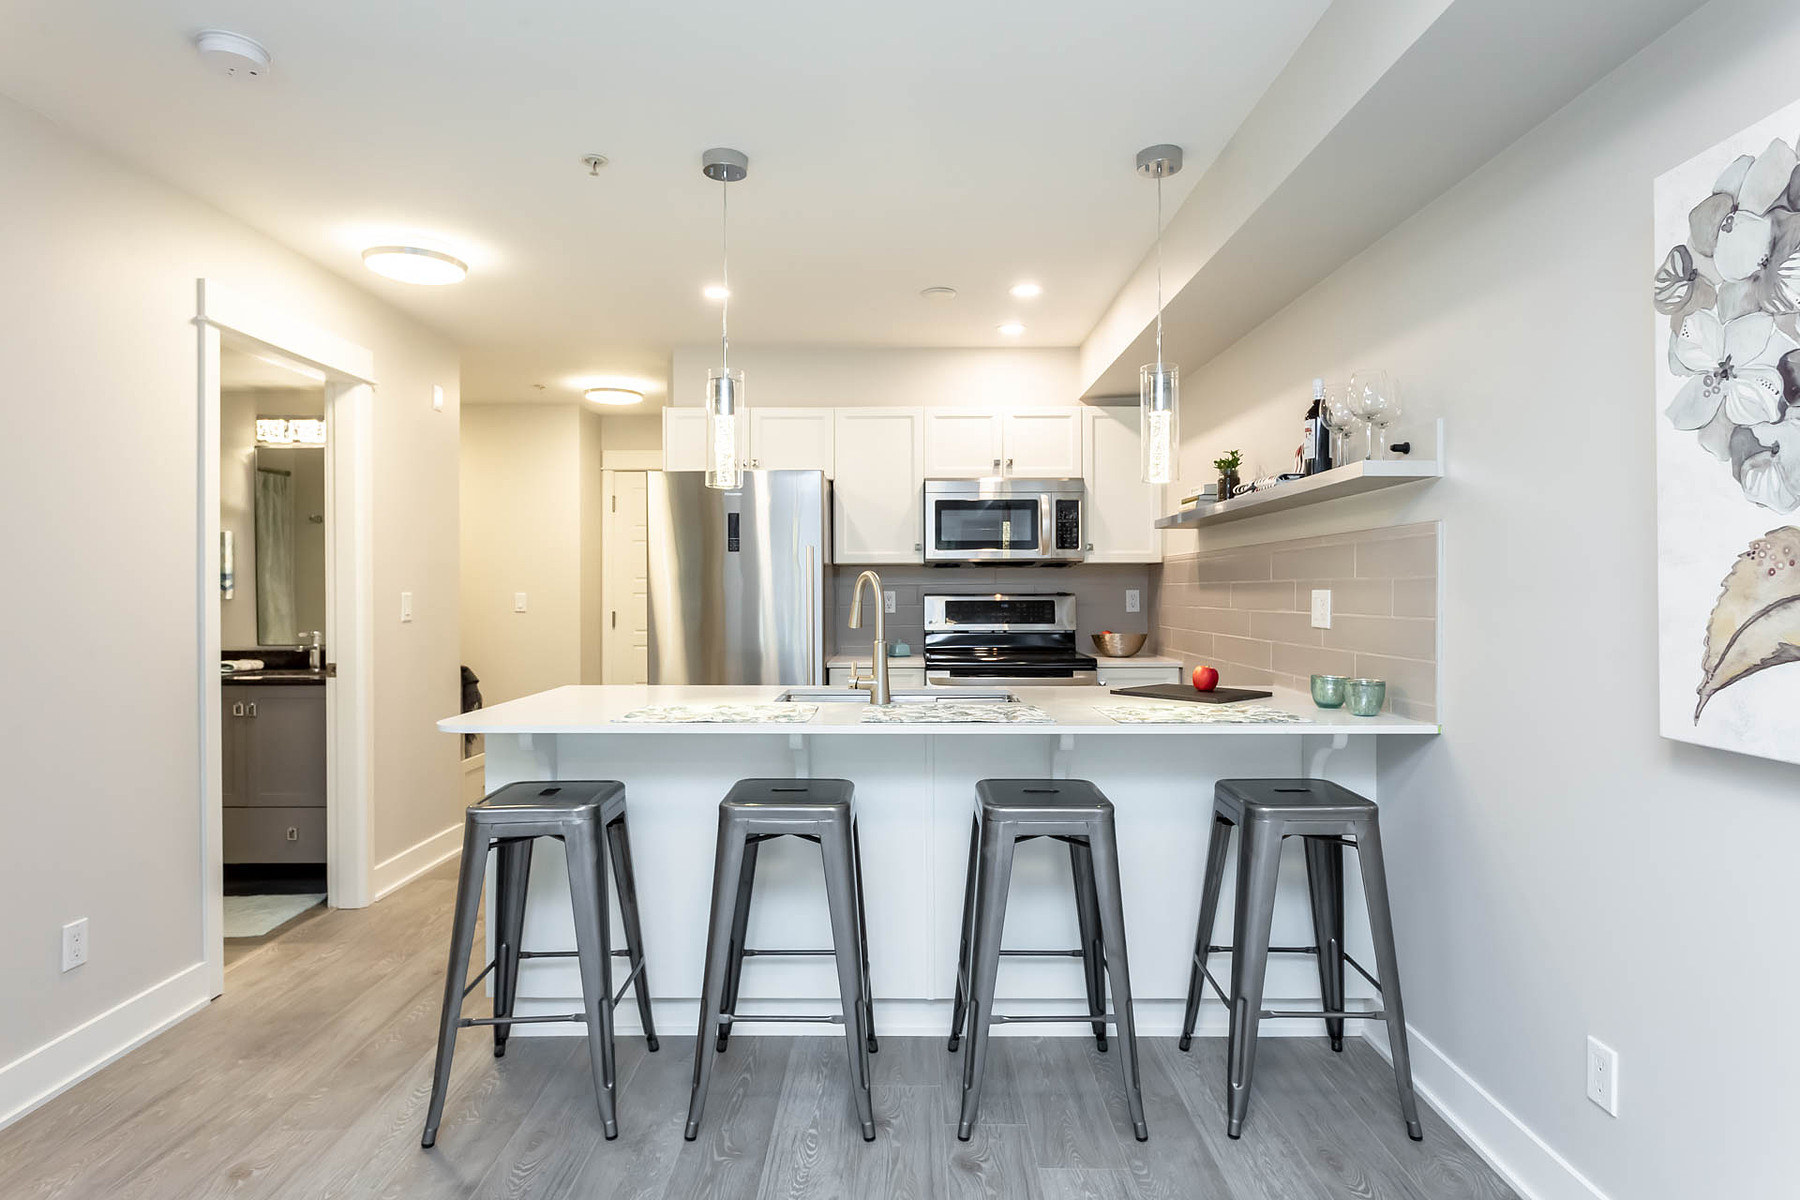 Condominiums for Sale at One of a Kind 109 30515 Cardinal Avenue Abbotsford, British Columbia V2T 0A8 Canada